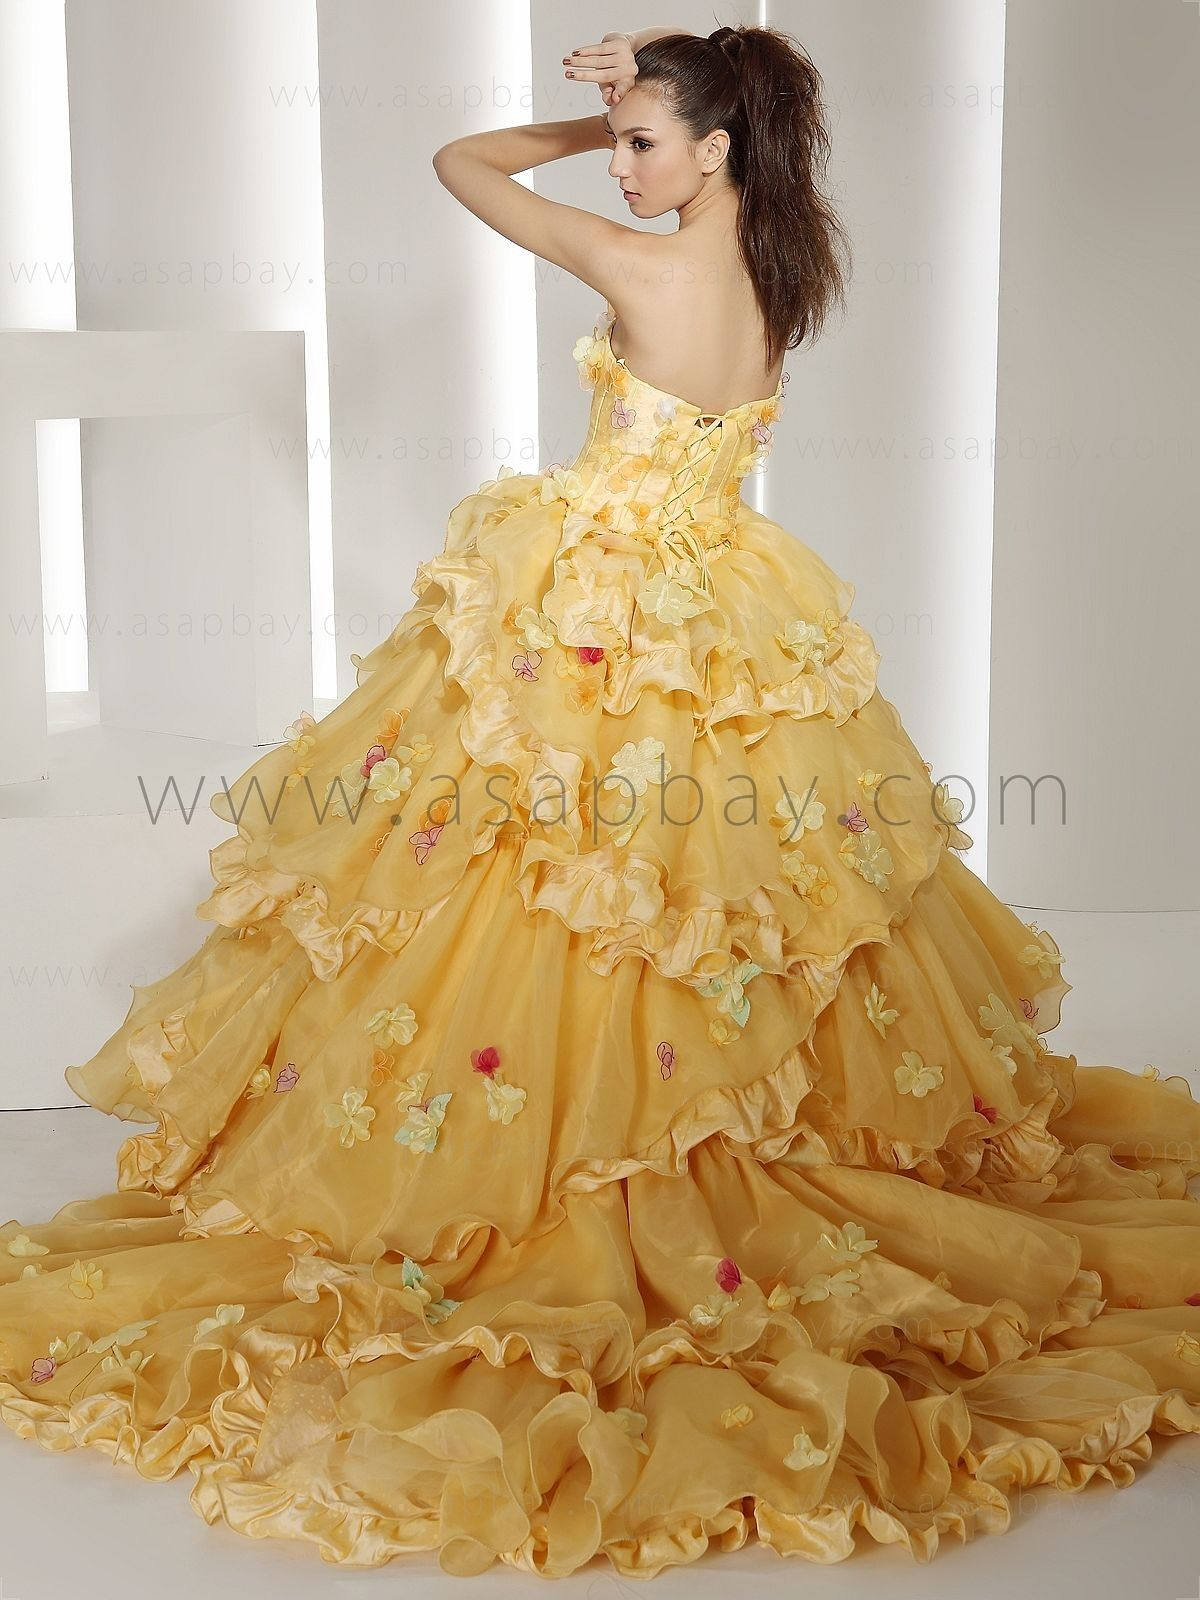 yellow wedding dress - Google Search | Yellow is my first favorite ...